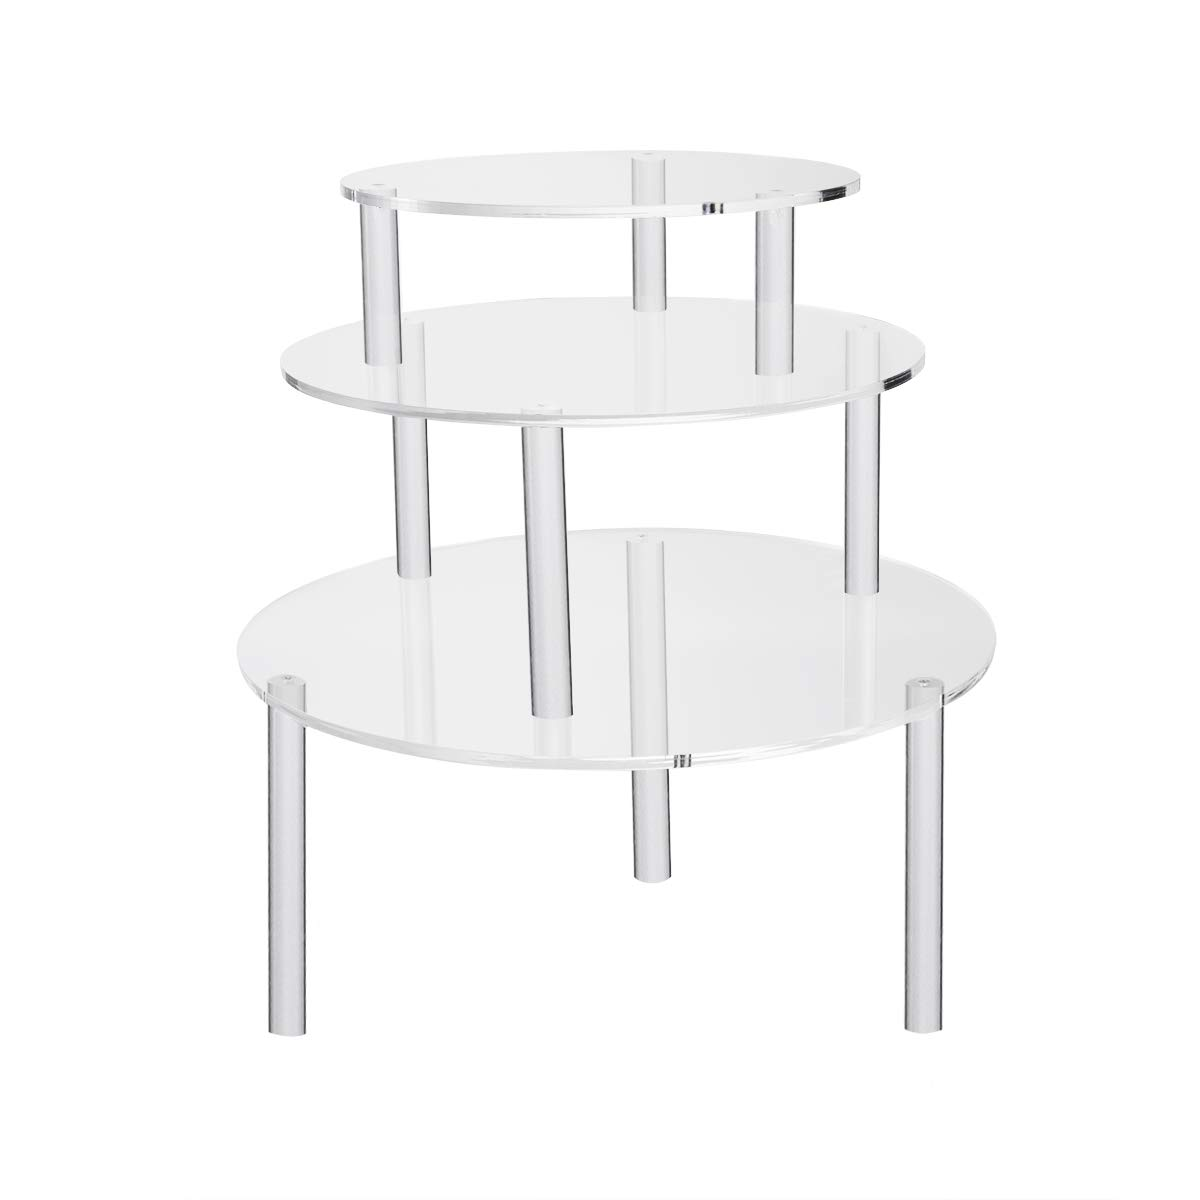 NIUBEE 3 Clear Round Acrylic Pedestal Display Risers Stand for Displaying Pizza, Cakes, Cupcakes, Danishes Pastries (8, 10, 12 inches) by NIUBEE